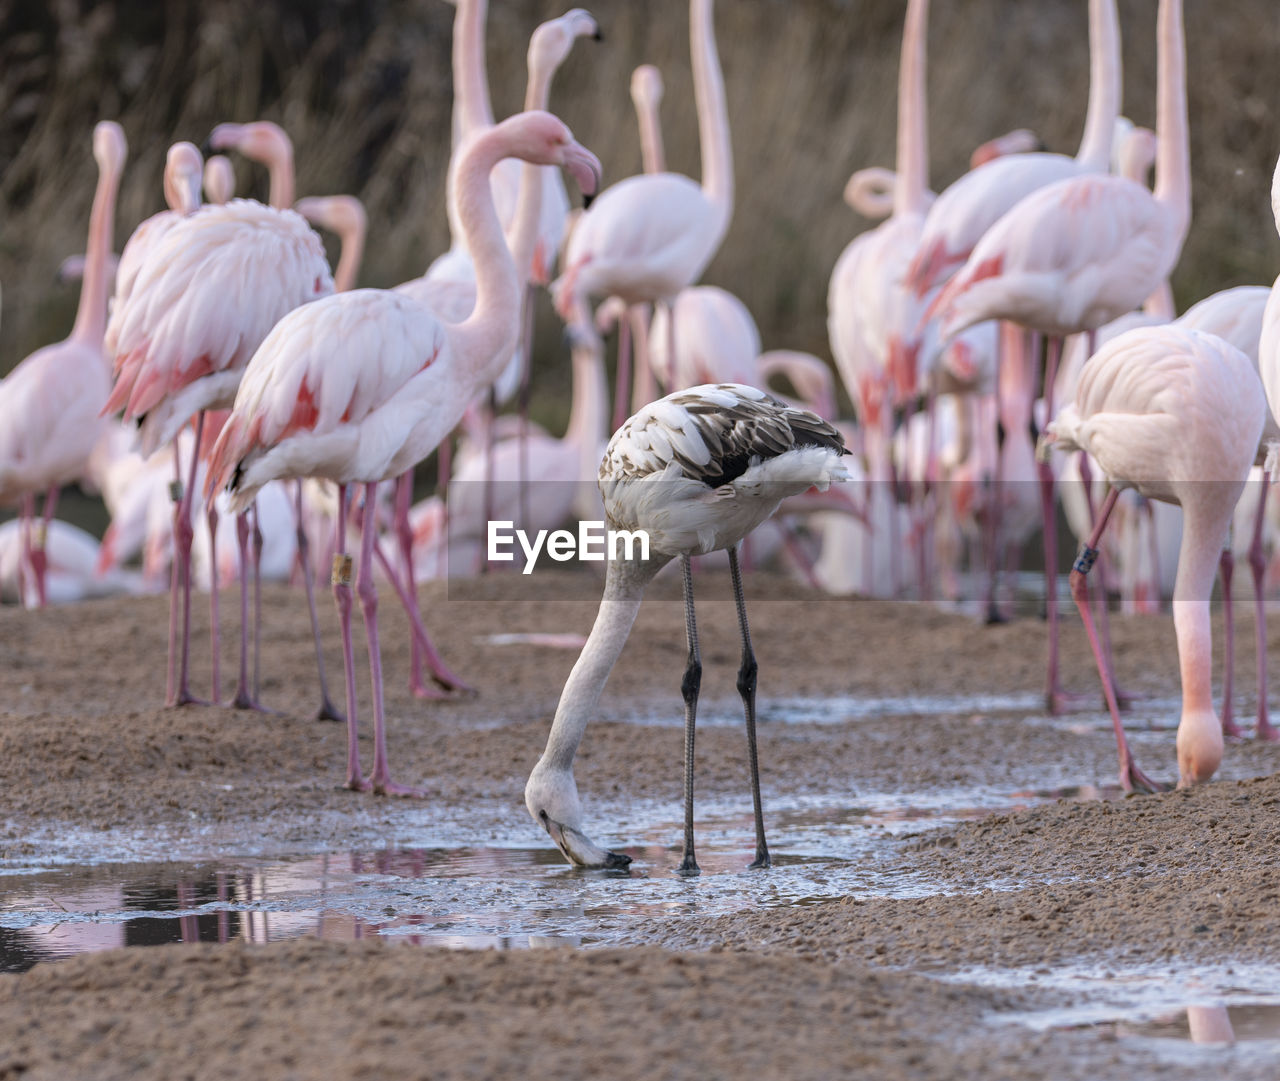 group of animals, animal, animals in the wild, animal themes, flamingo, bird, animal wildlife, large group of animals, vertebrate, water, day, lake, no people, focus on foreground, land, nature, pink color, selective focus, beauty in nature, flock of birds, outdoors, drinking, freshwater bird, animal neck